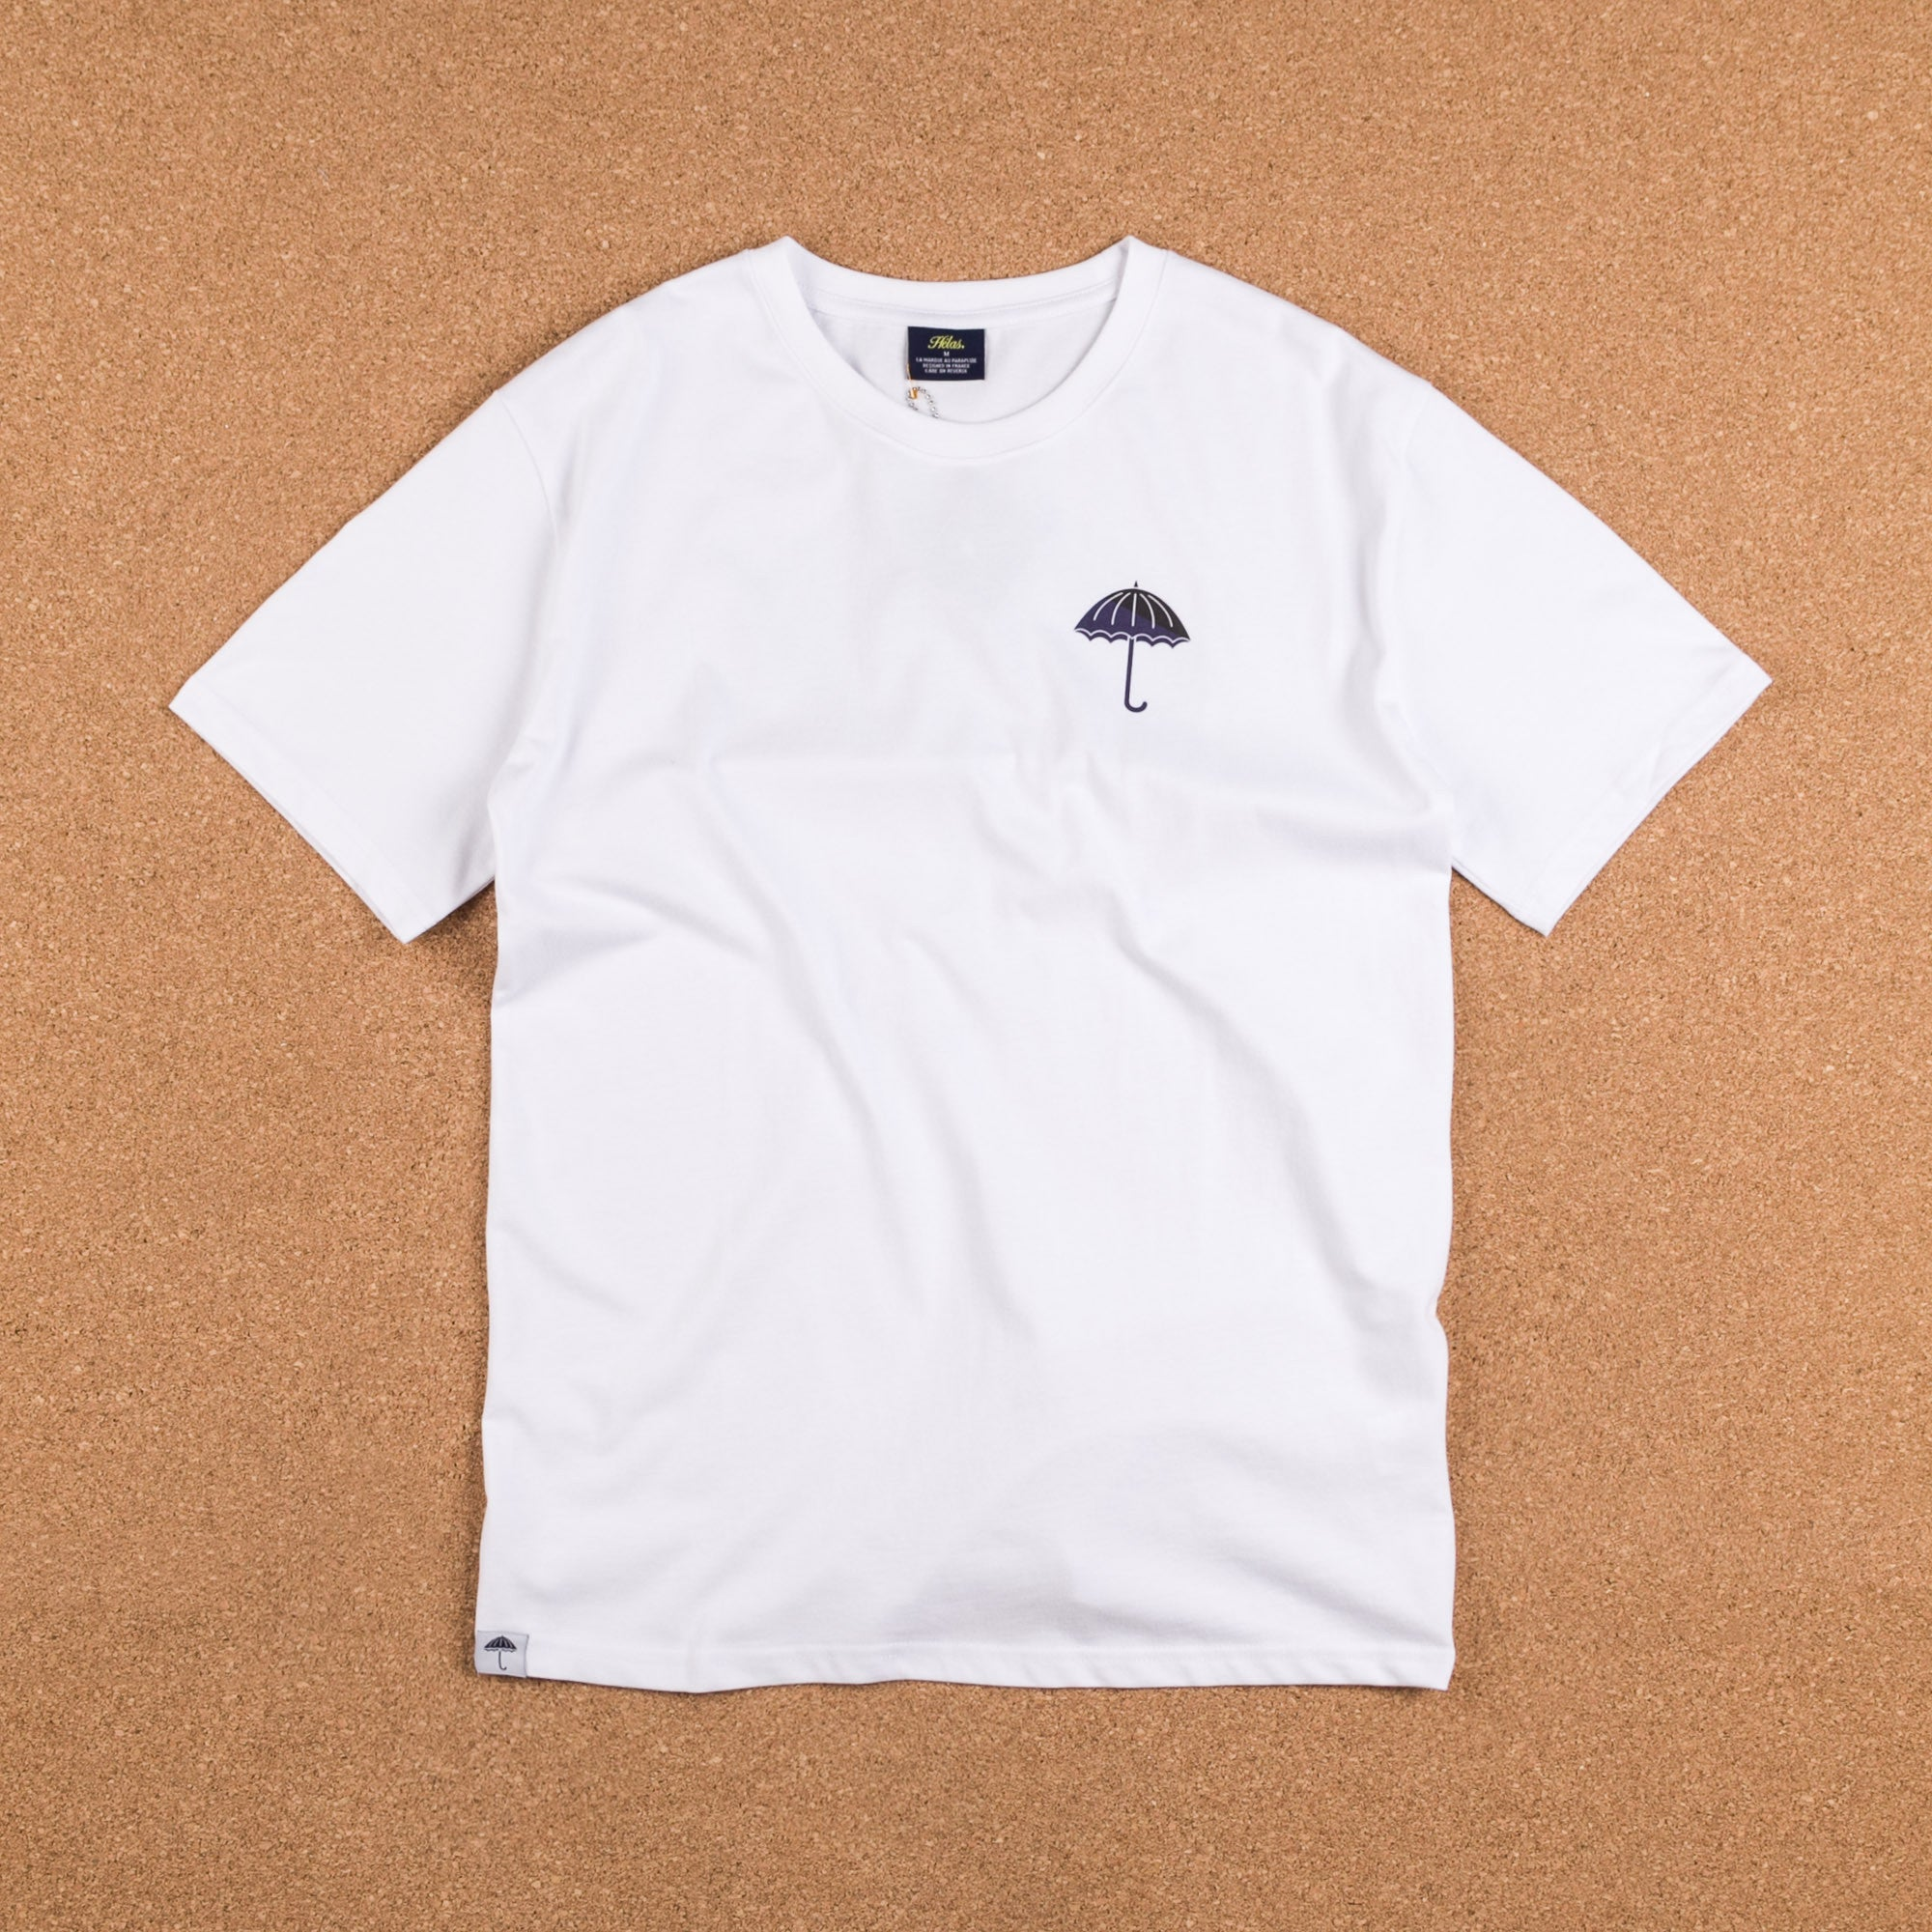 Helas Umbrella T-Shirt - White / Navy / Black